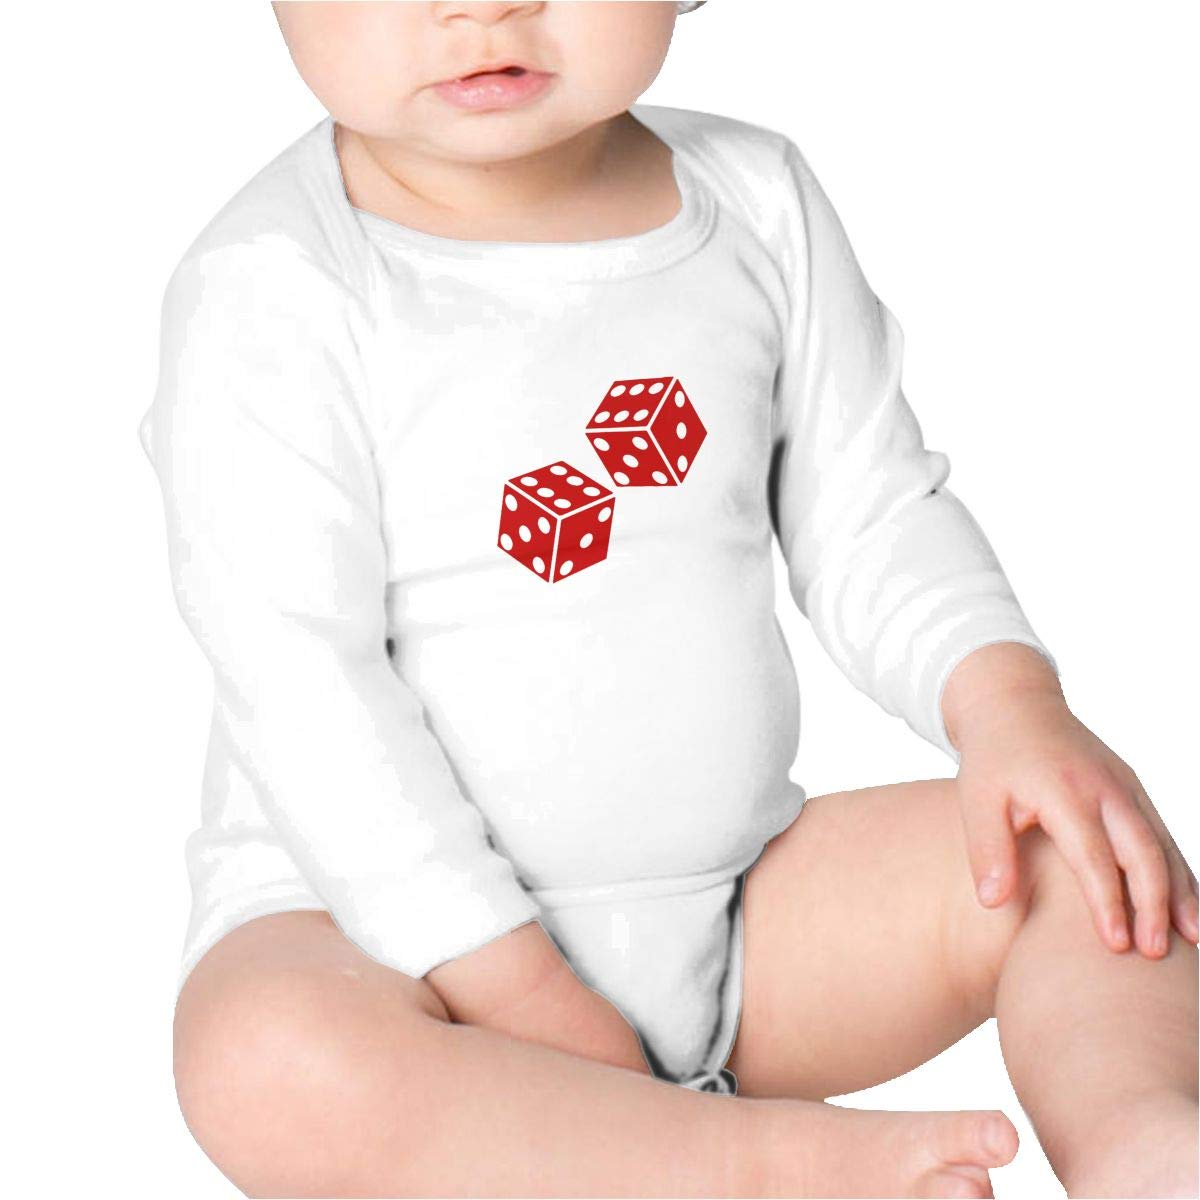 Pikaqiuleilei Dice Clipart Toddler Cotton,Long Sleeve Creeping Suit